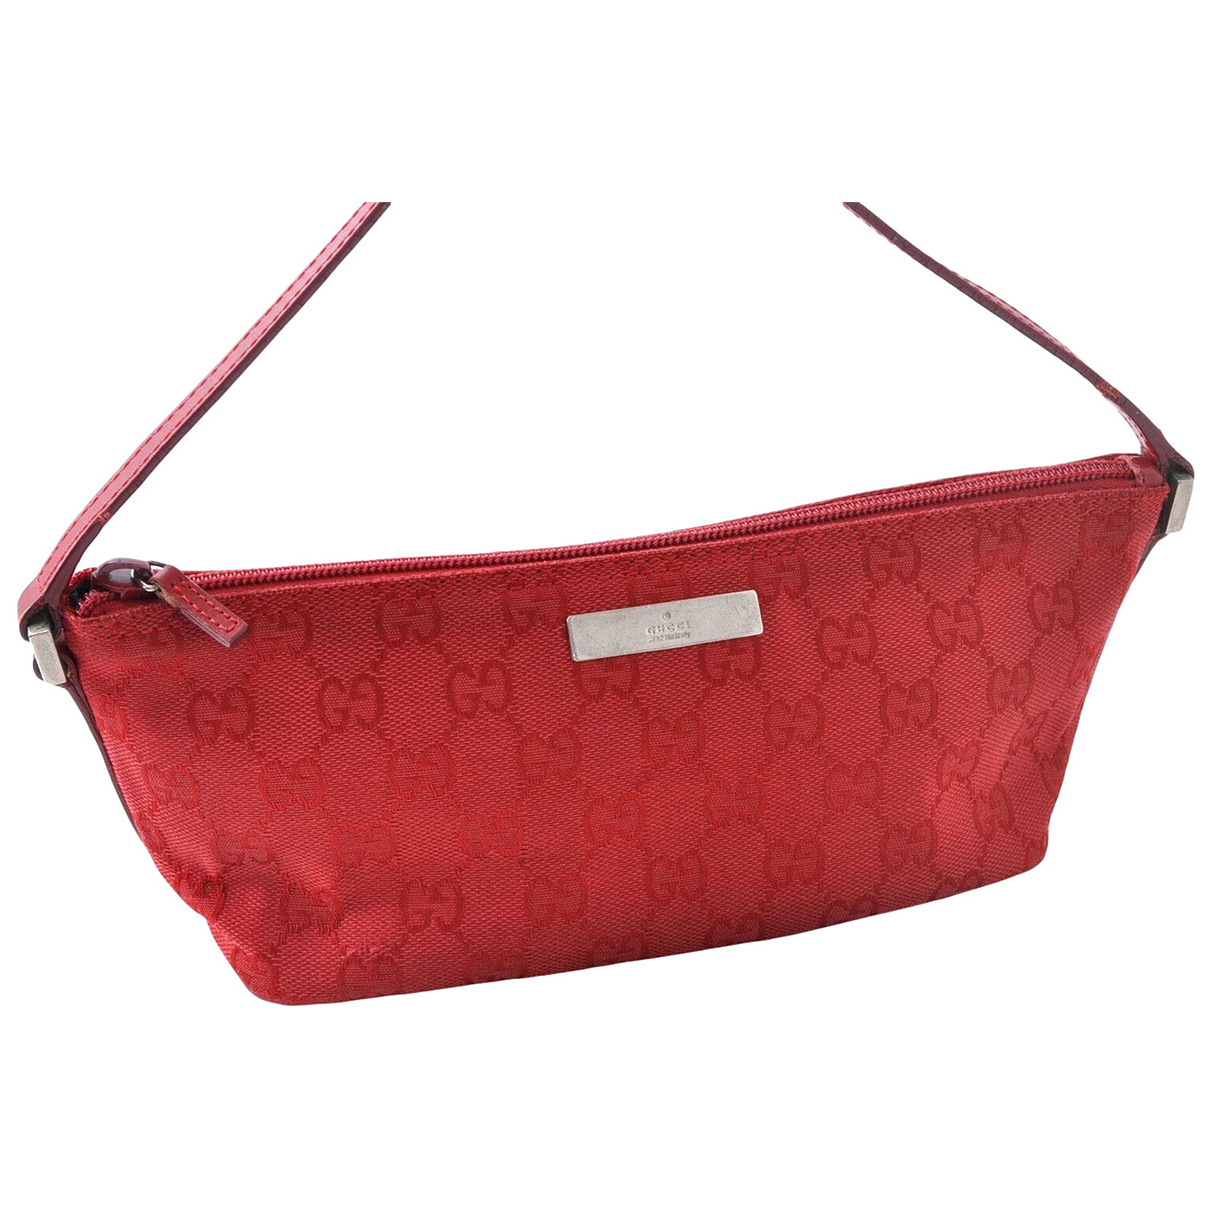 Gucci N Red Cloth Purses, wallet & cases for Women N